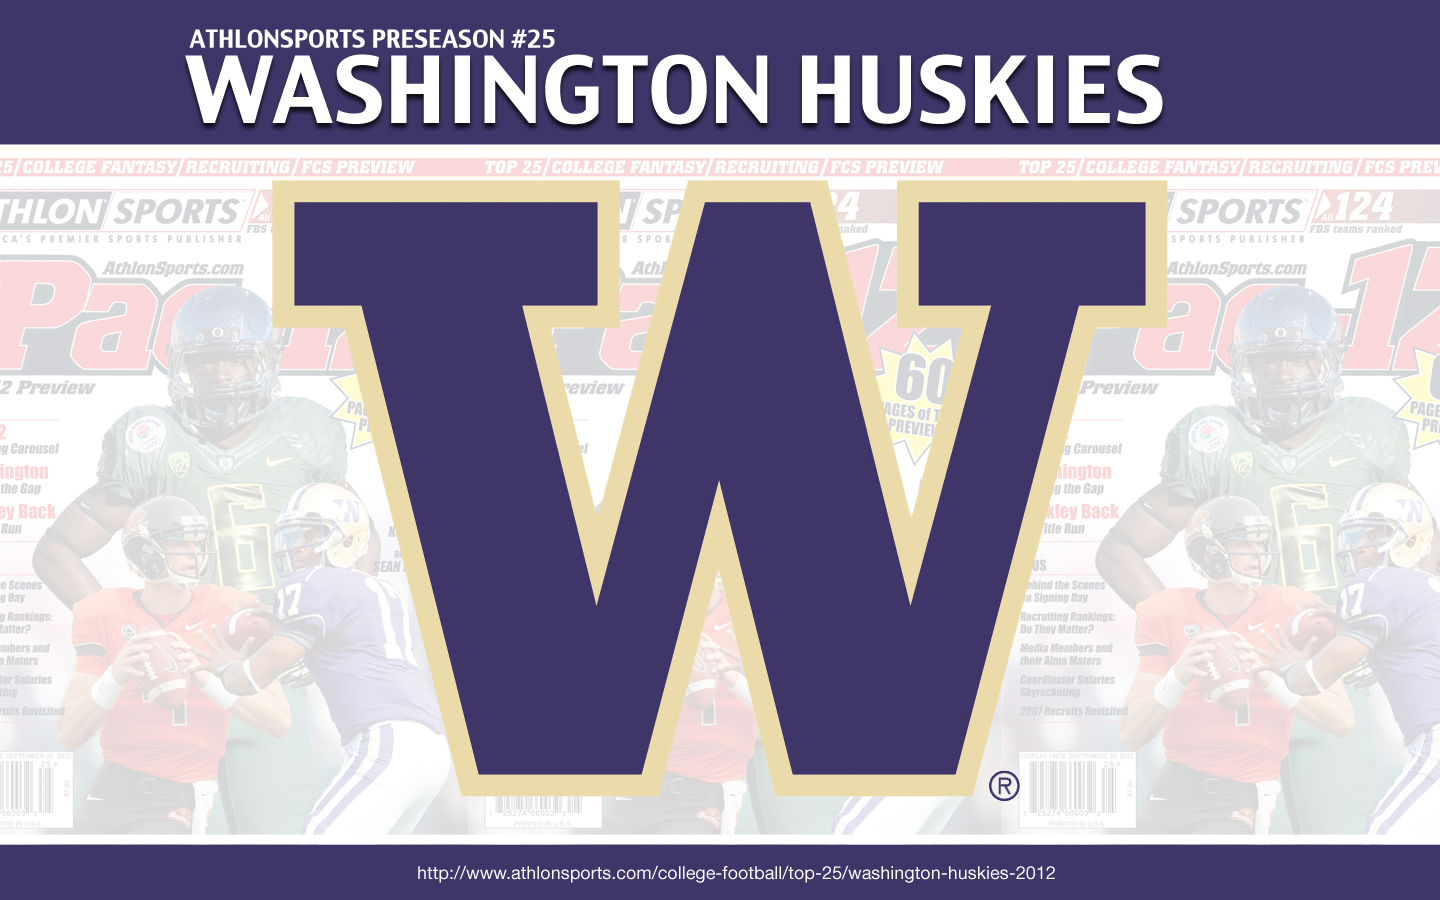 Alabama Football Washington Huskies 545793 With Resolutions 1440900 1440x900